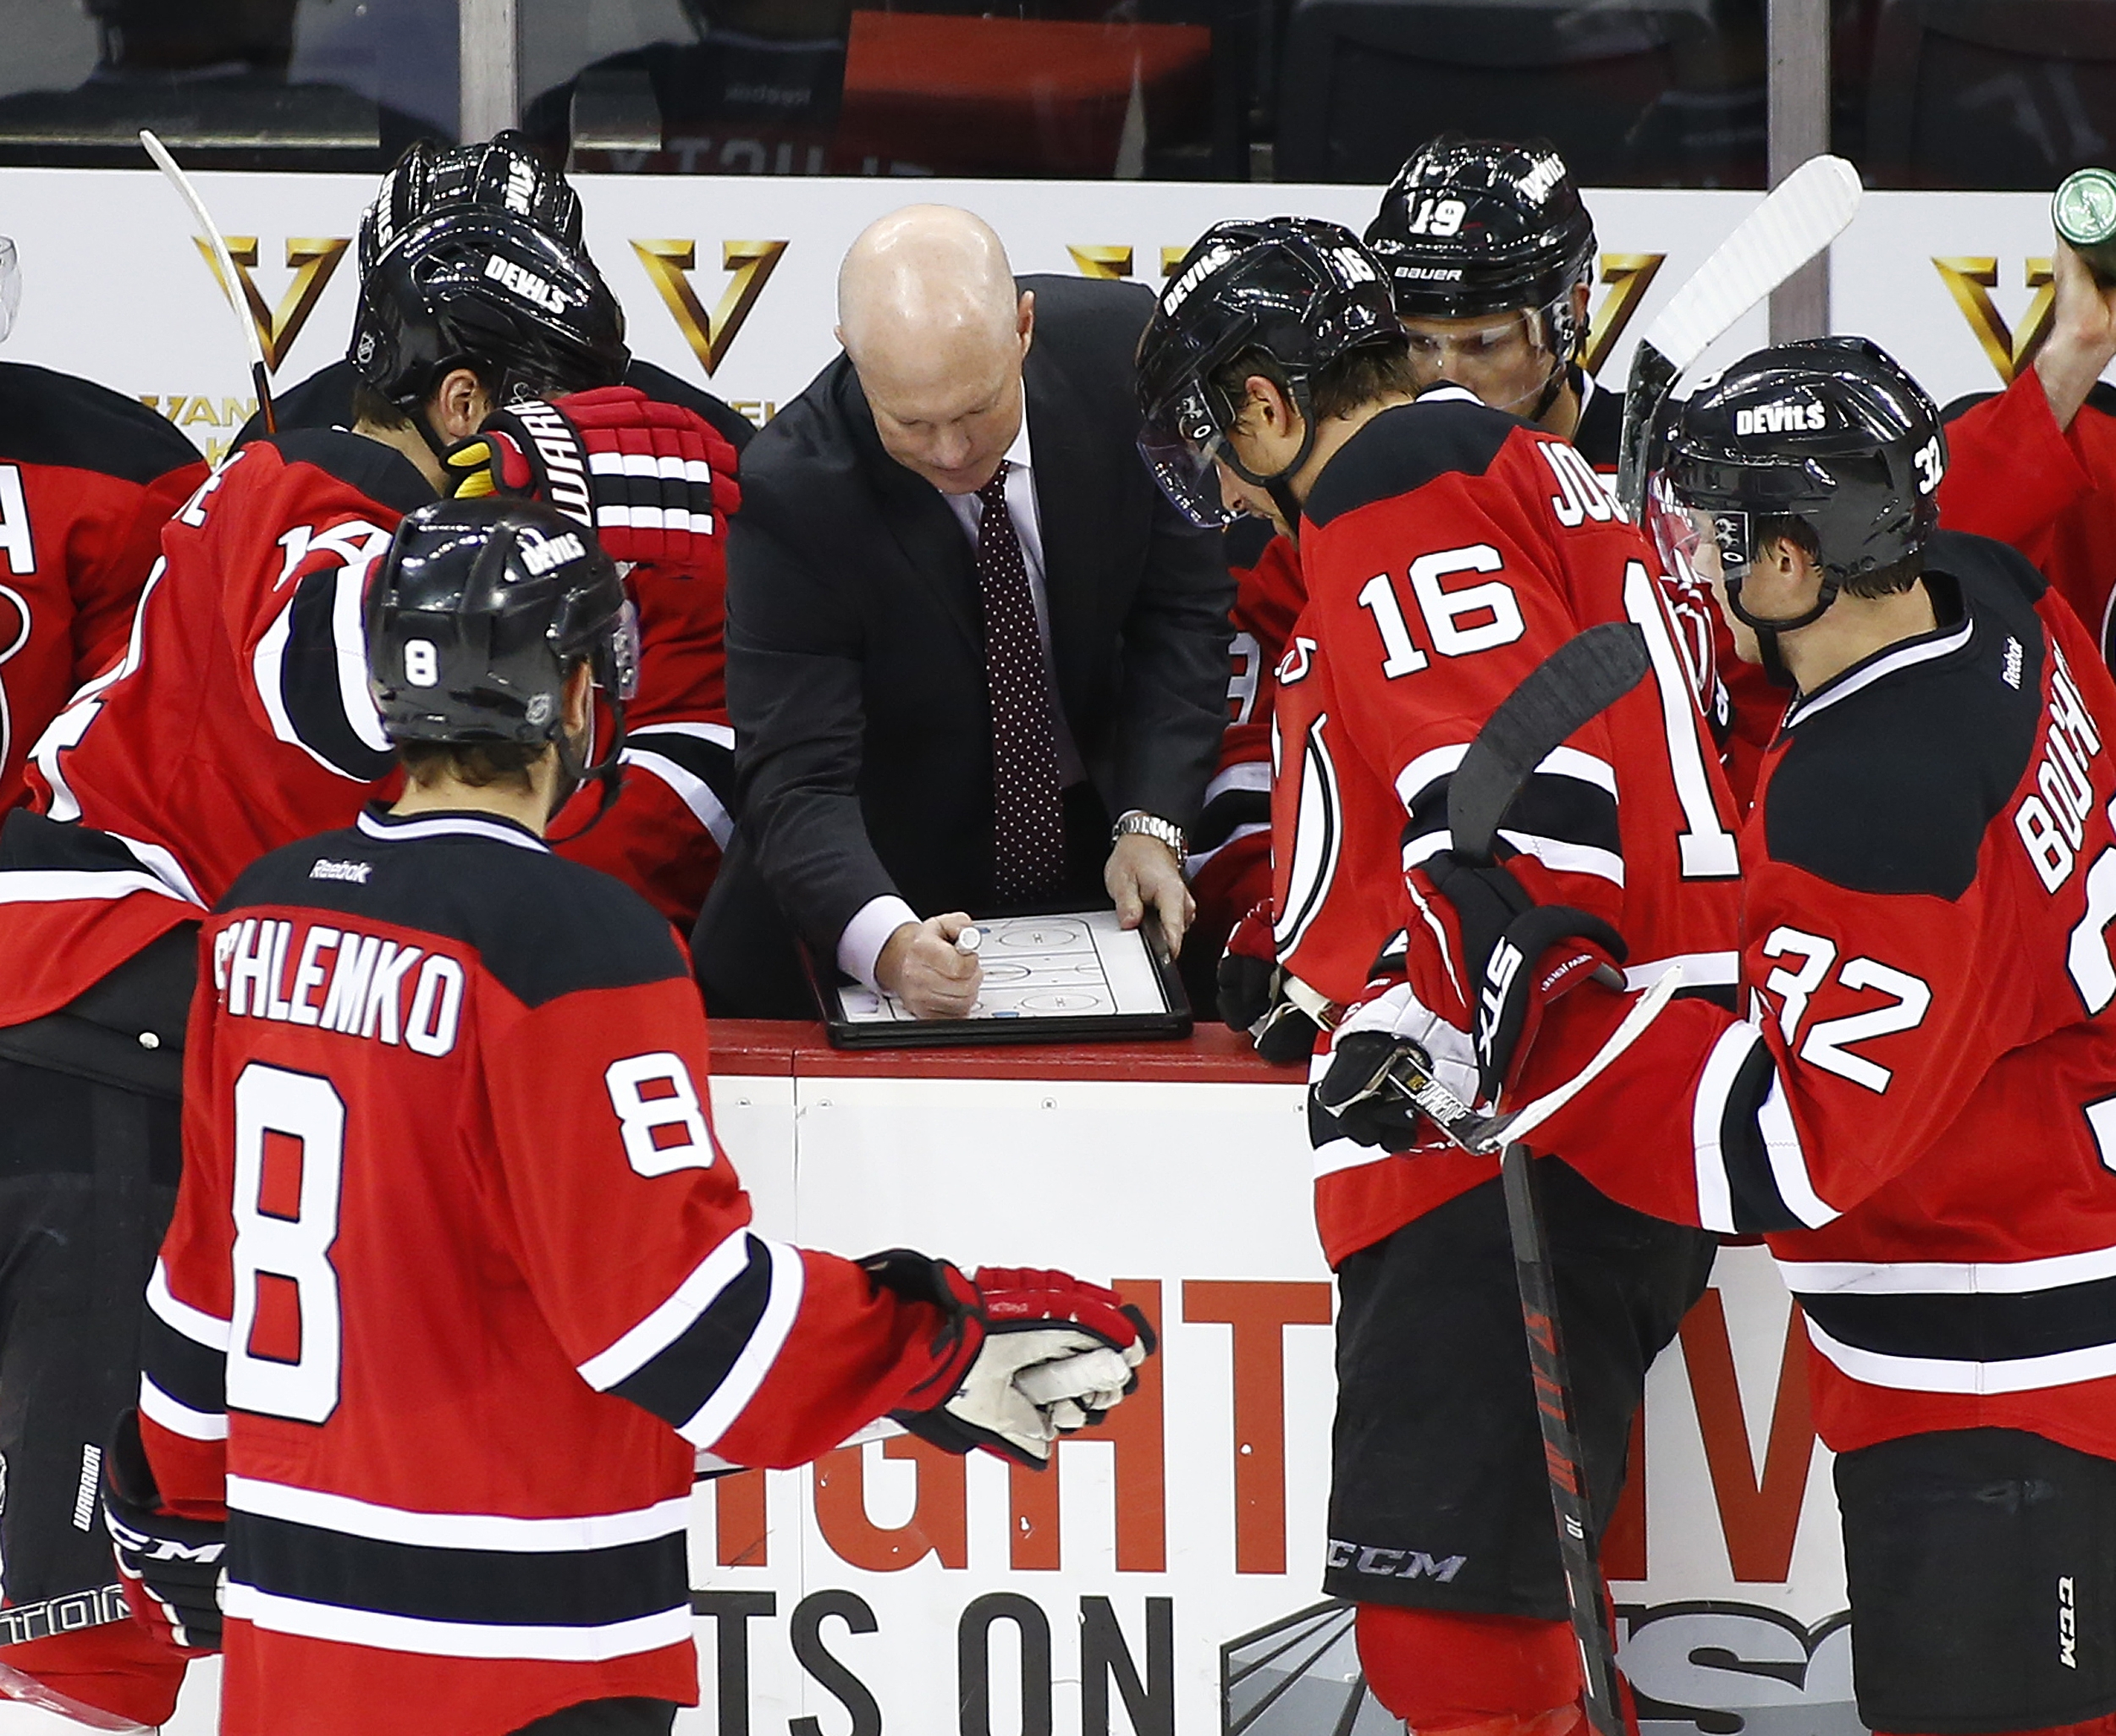 New Jersey Devils head coach John Hynes diagrams a play for his team during a timeout during the third period against the Philadelphia Flyers in an NHL preseason hockey game in Newark, N.J., Friday, Oct 2, 2015. The Devils defeated the Flyers 3-2. (AP Pho